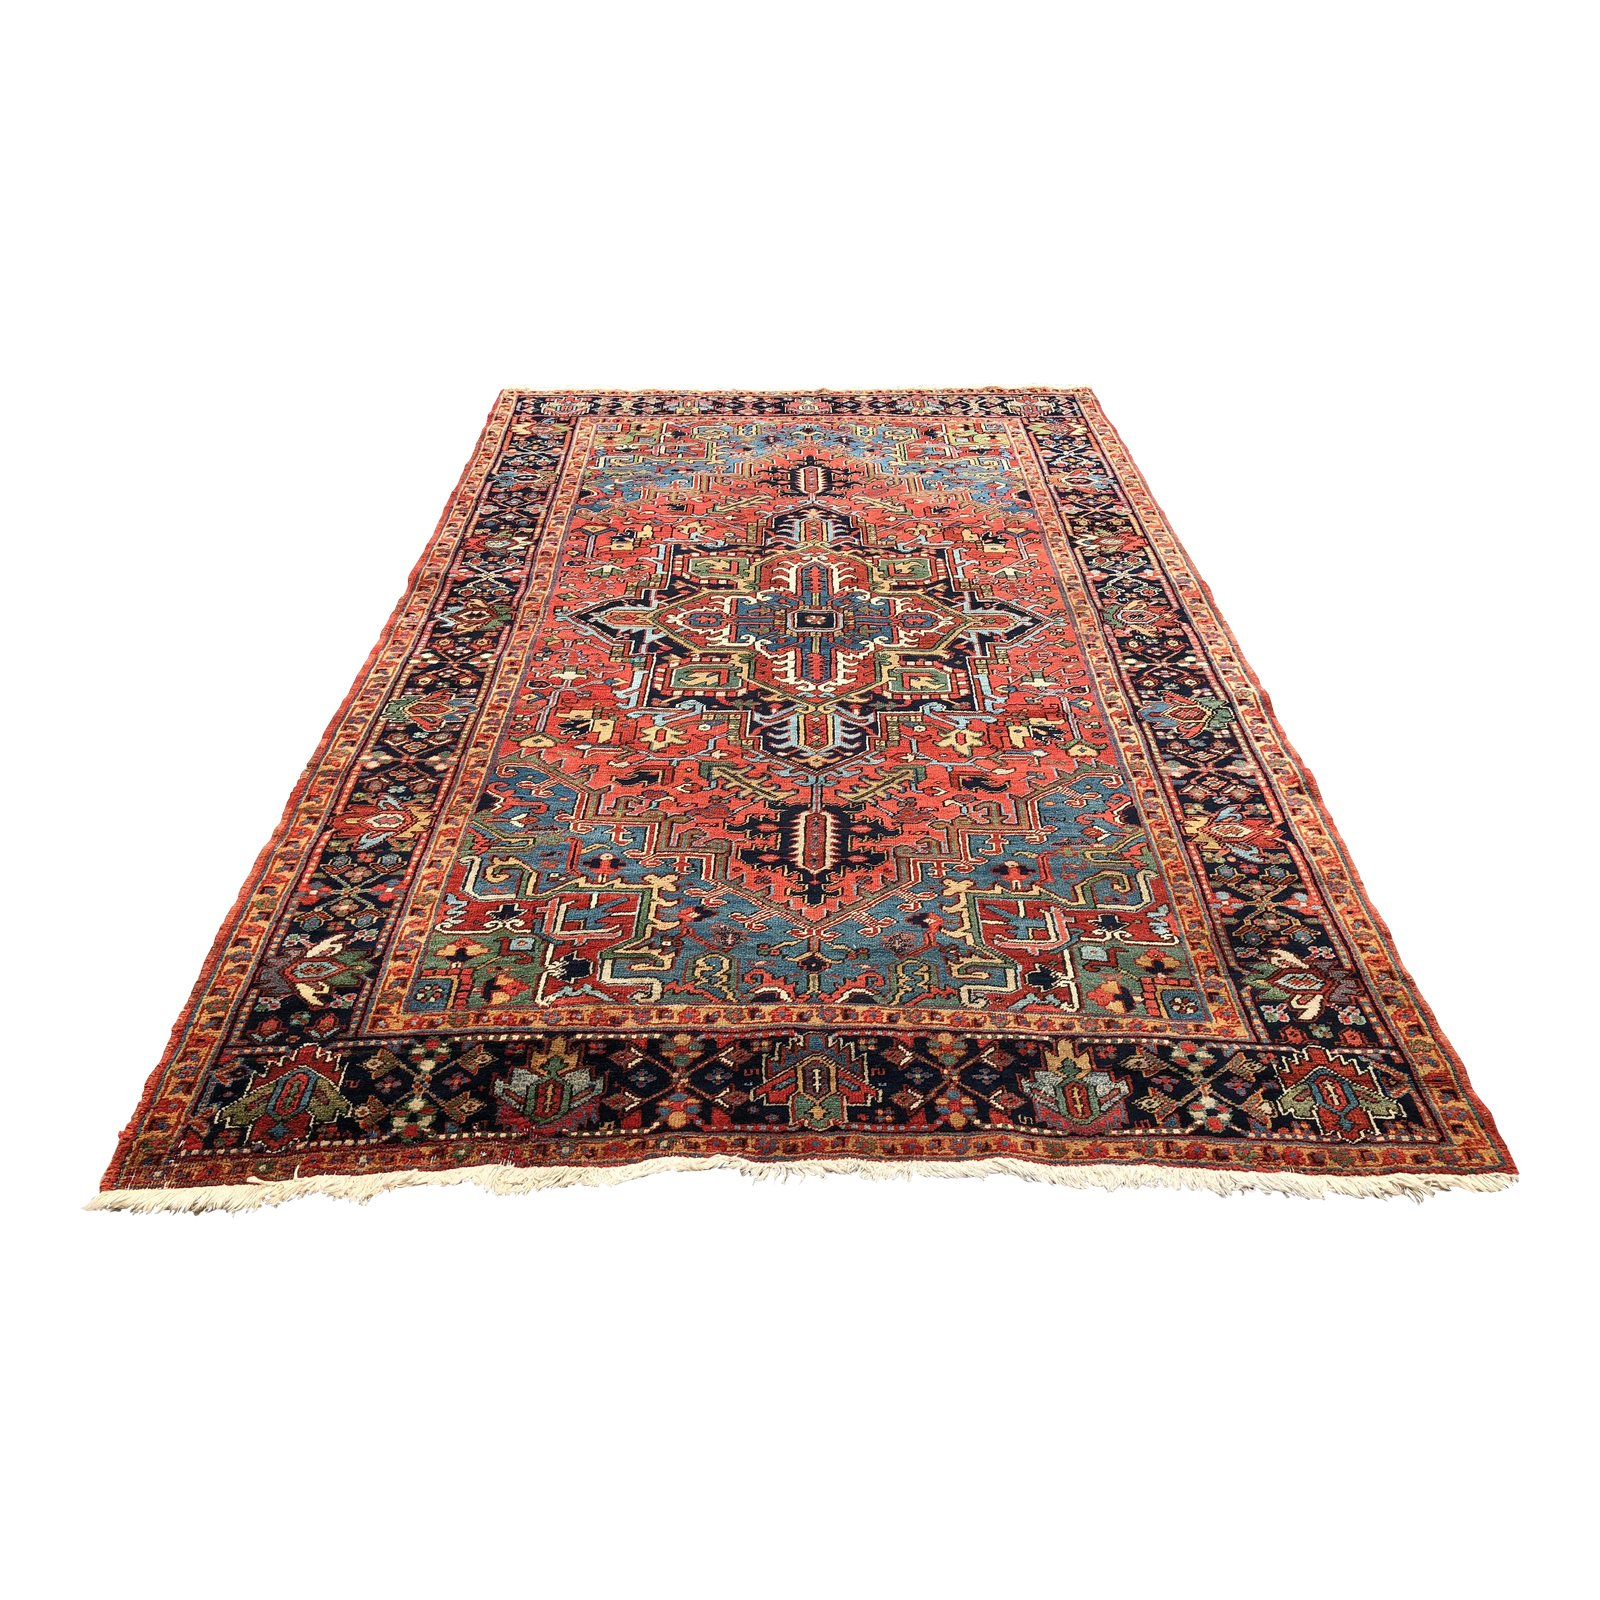 Persian Geometric Red Blue And Black Area Rug 6 7 9 10